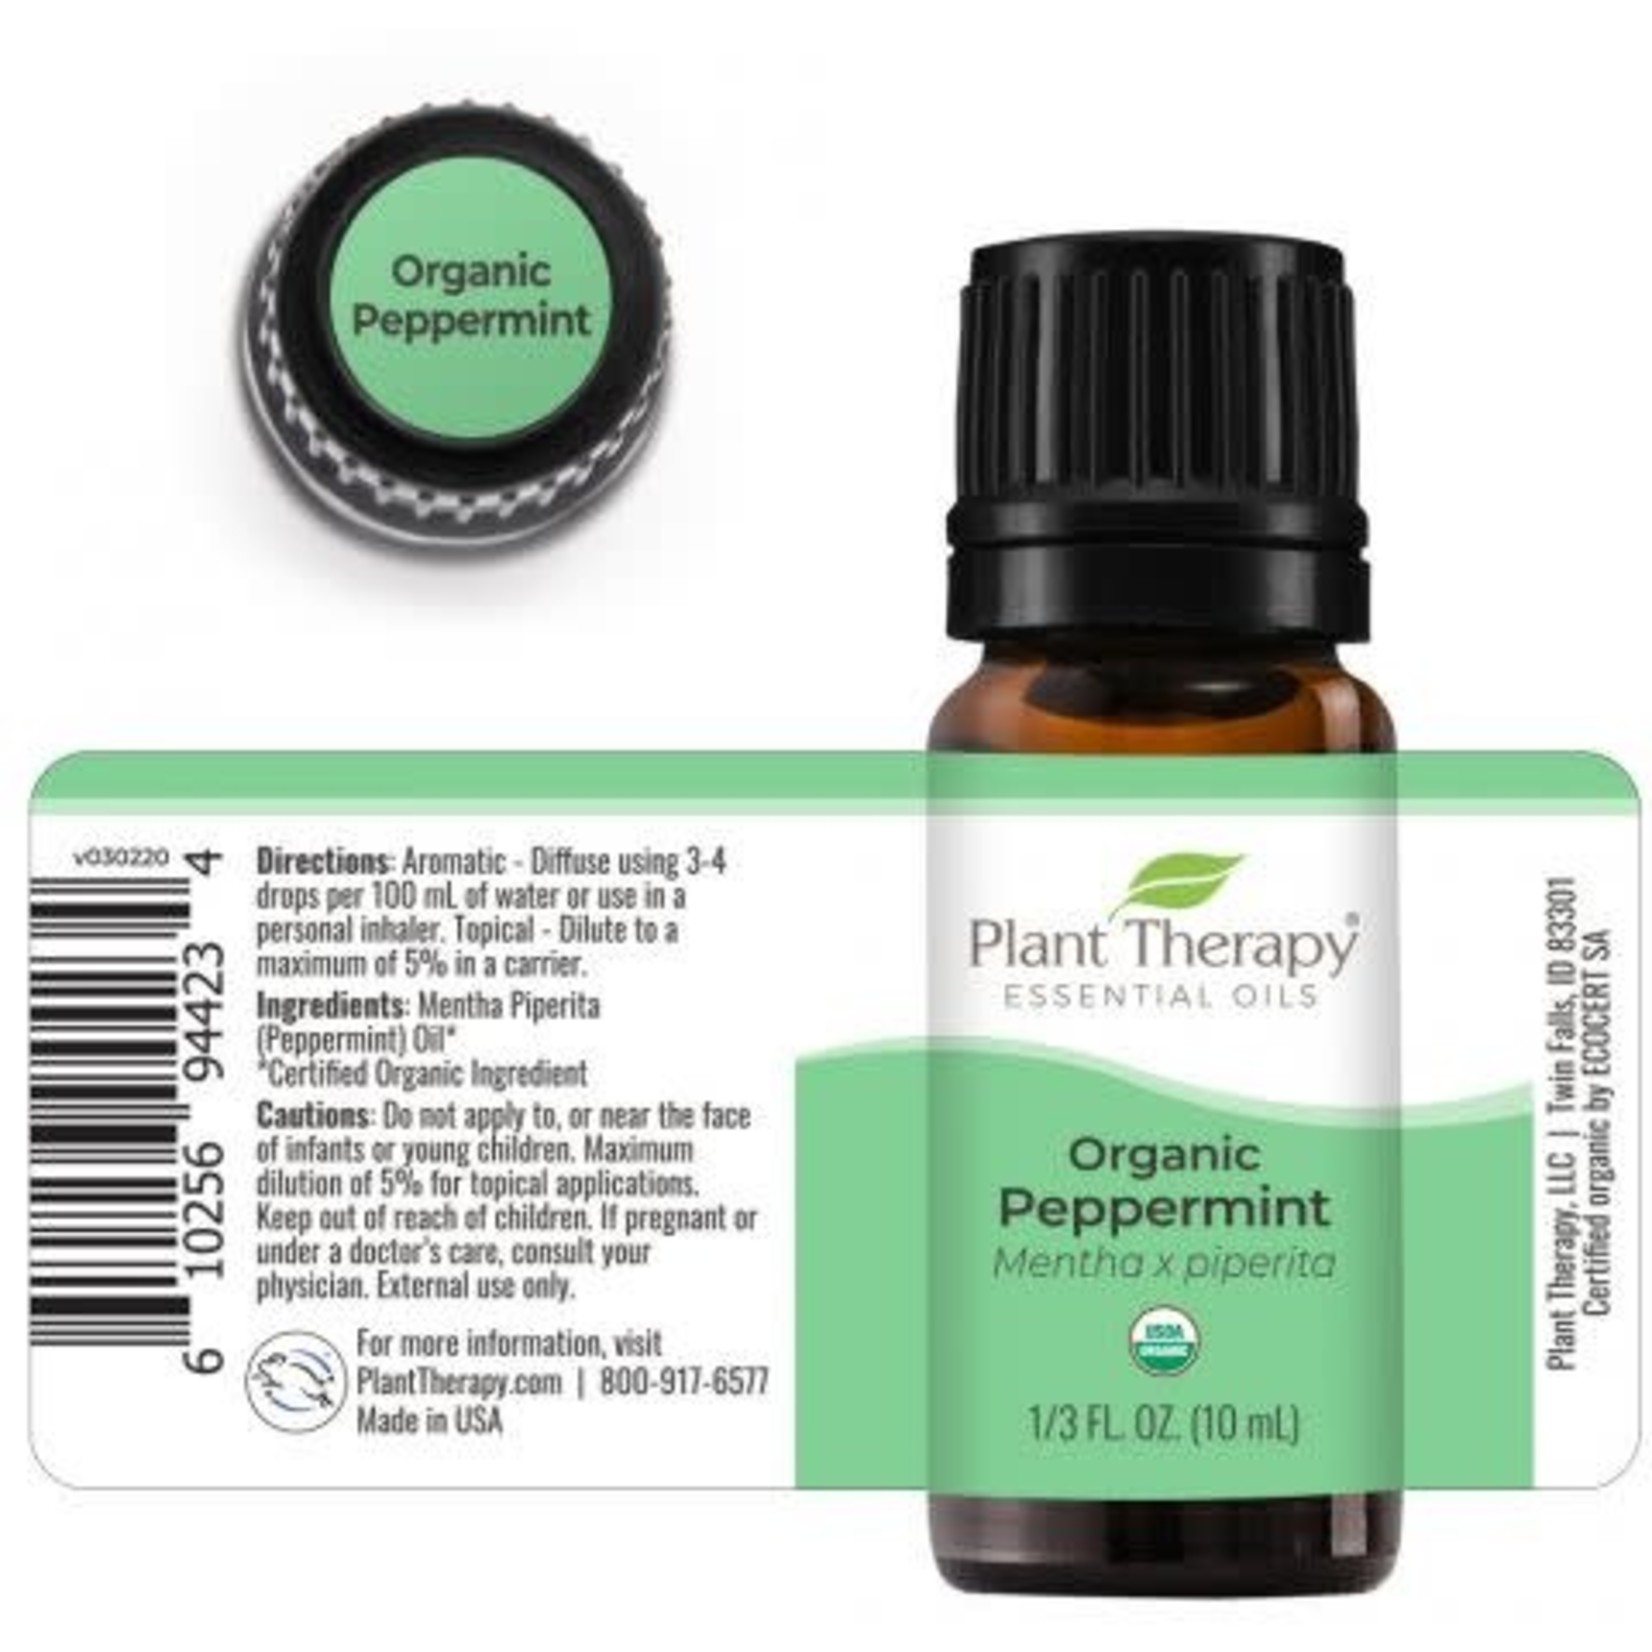 Plant Therapy PT Peppermint Organic Essential Oil